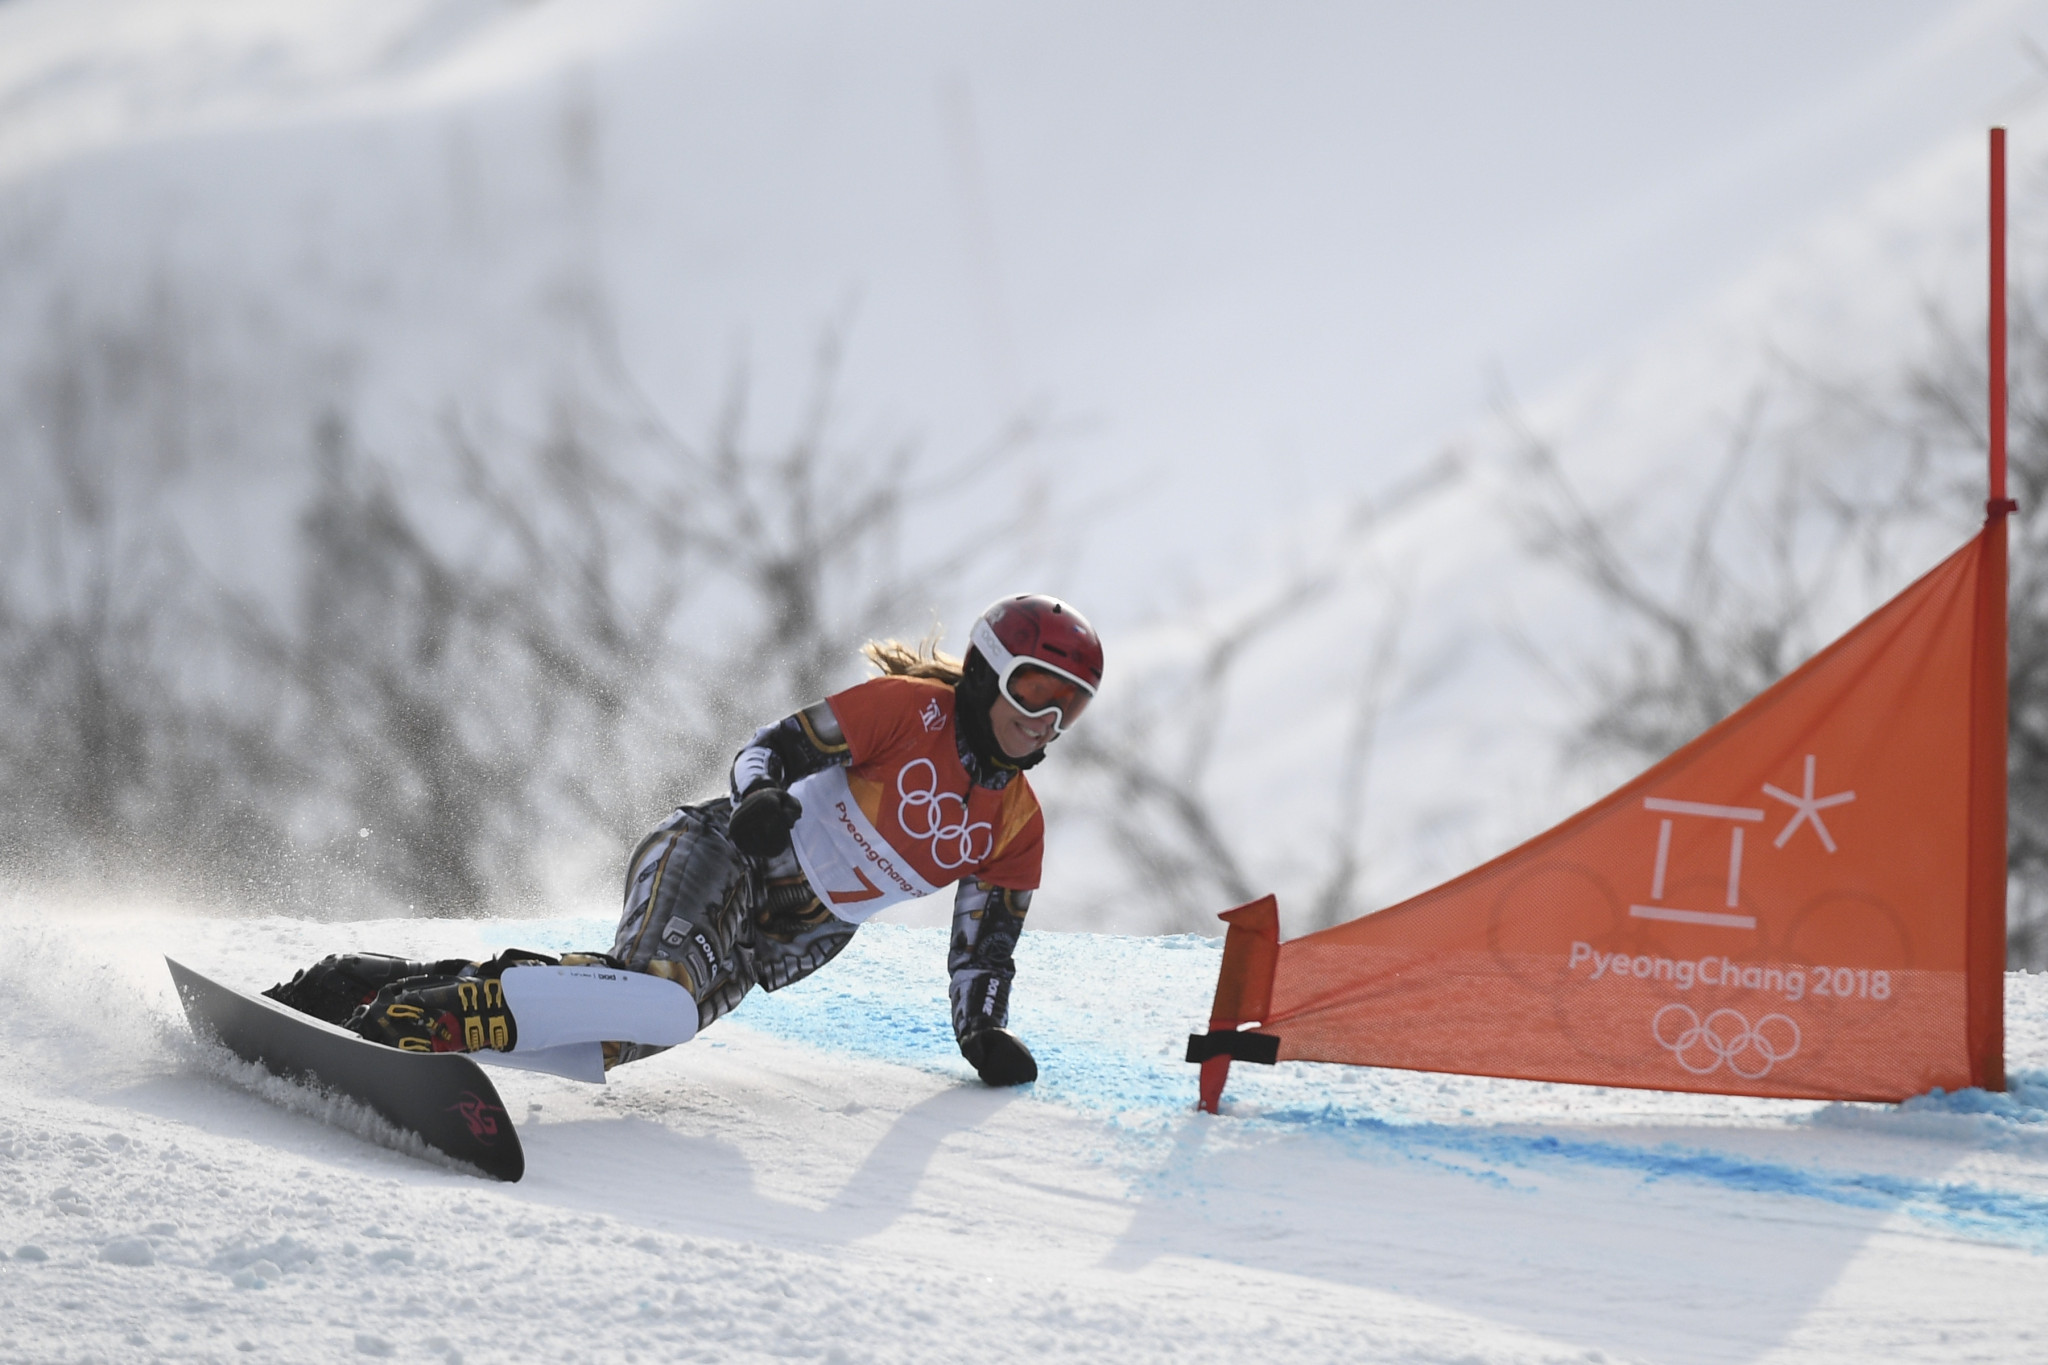 Ester Ledecka, en route to Olympic snowboard parallel giant slalom gold, has already secured this season's FIS World Cup title ©Getty Images